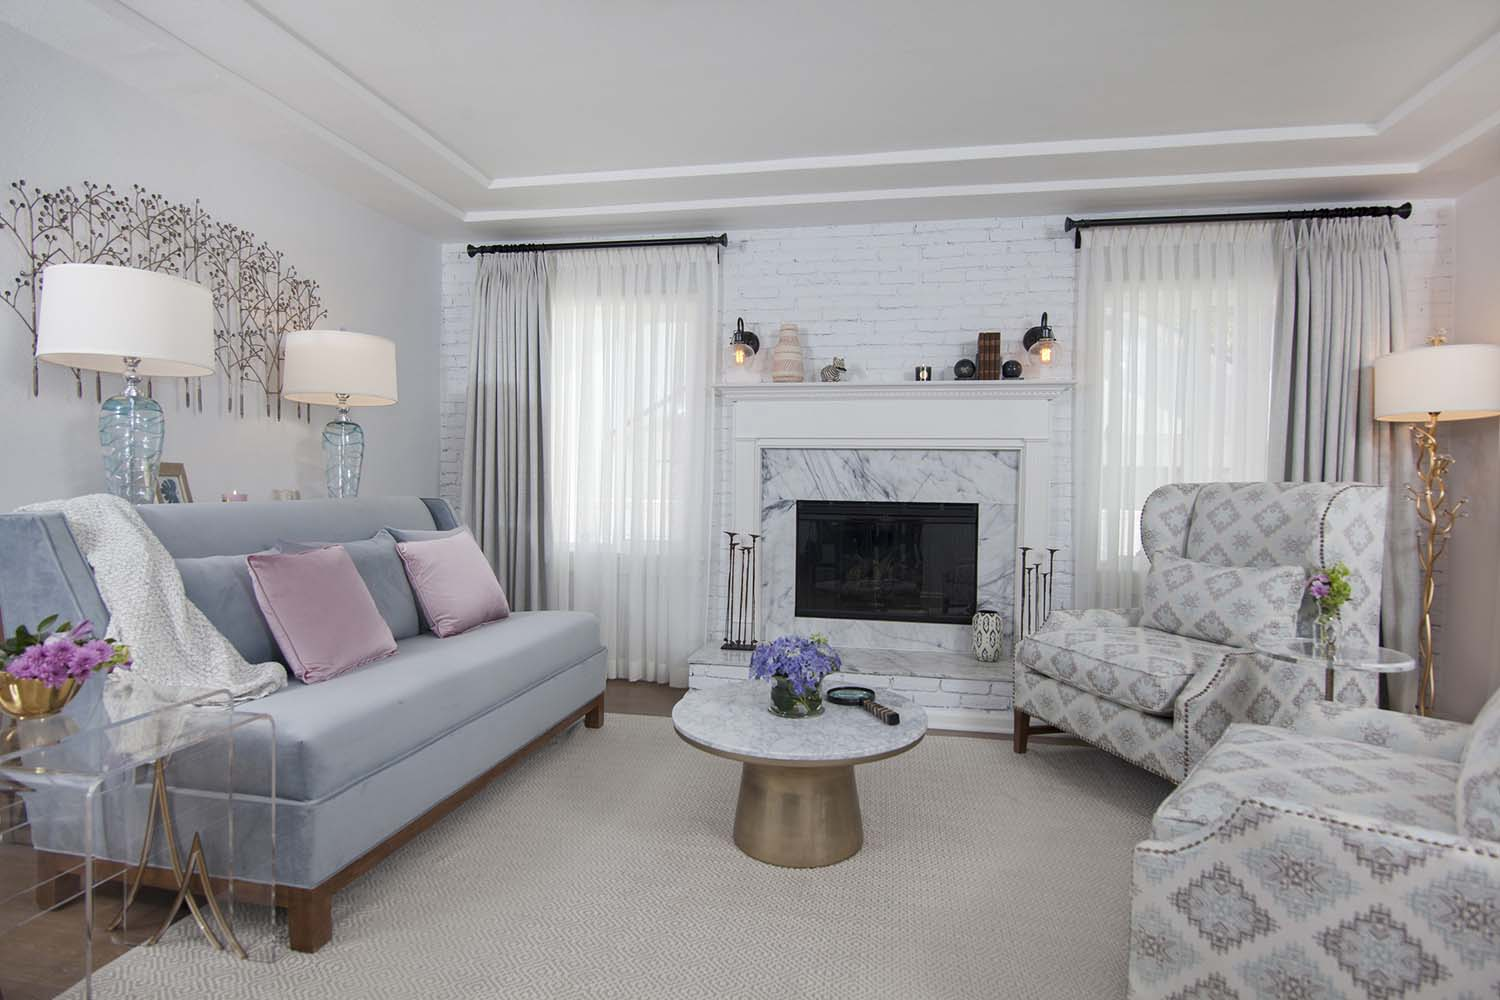 Studio 9 interior design los angeles best commercial - Interior design firm los angeles ...